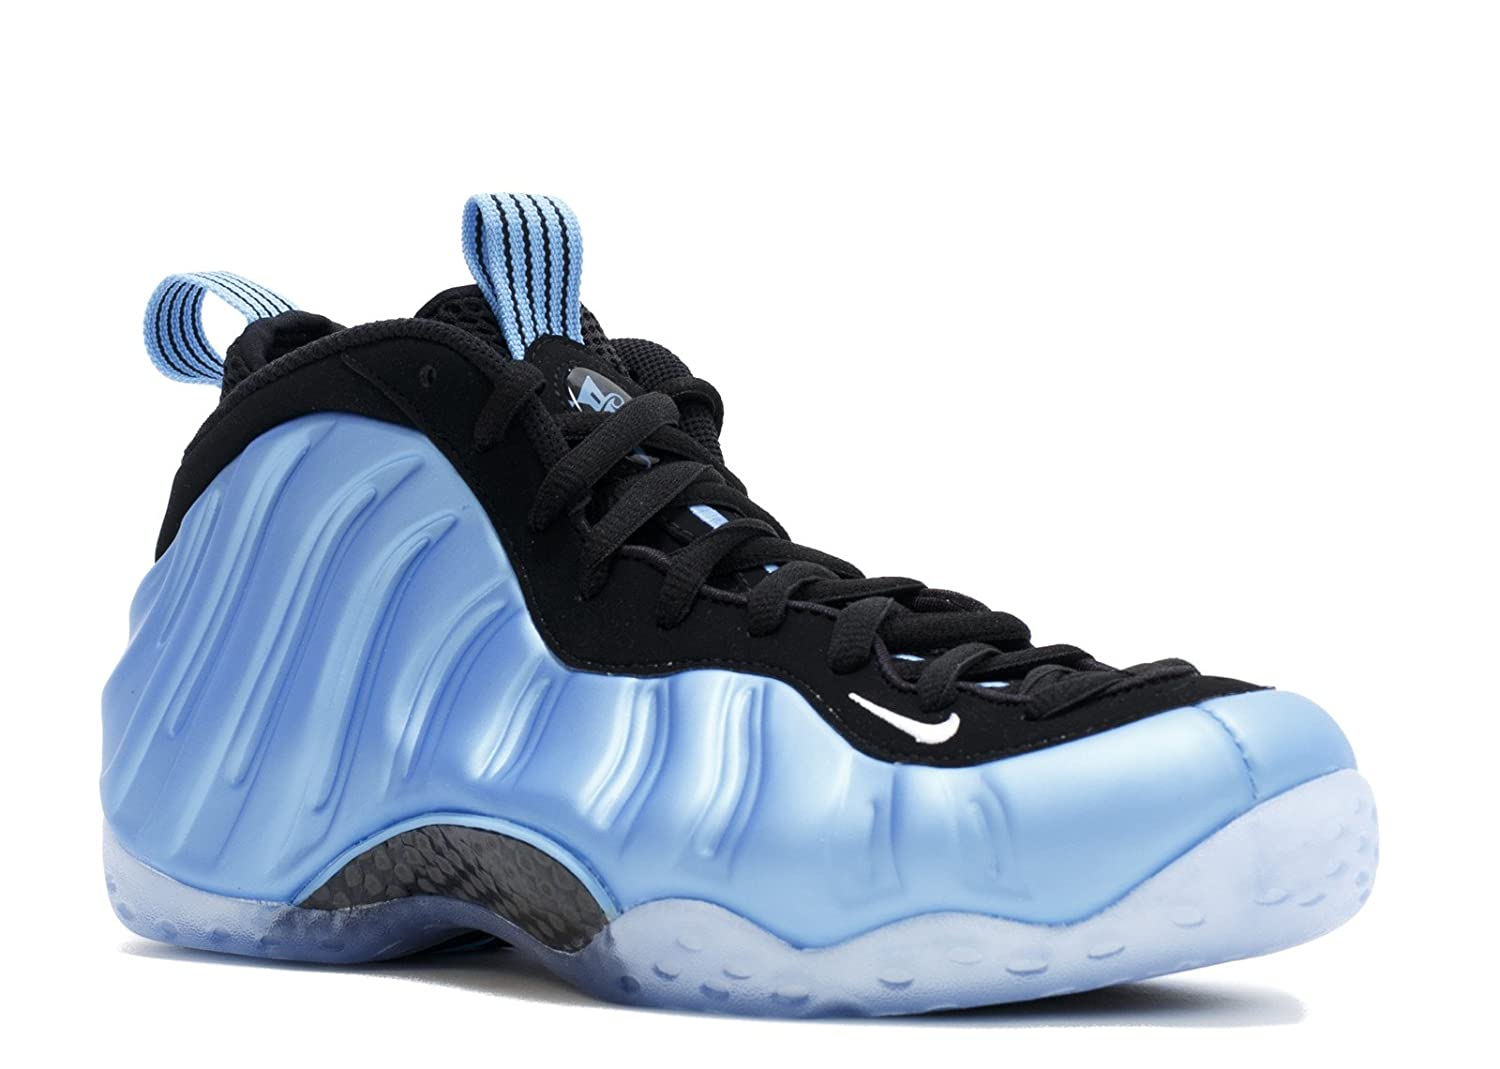 reputable site 8d416 1d4a8 Nike Air Foamposite One - 15